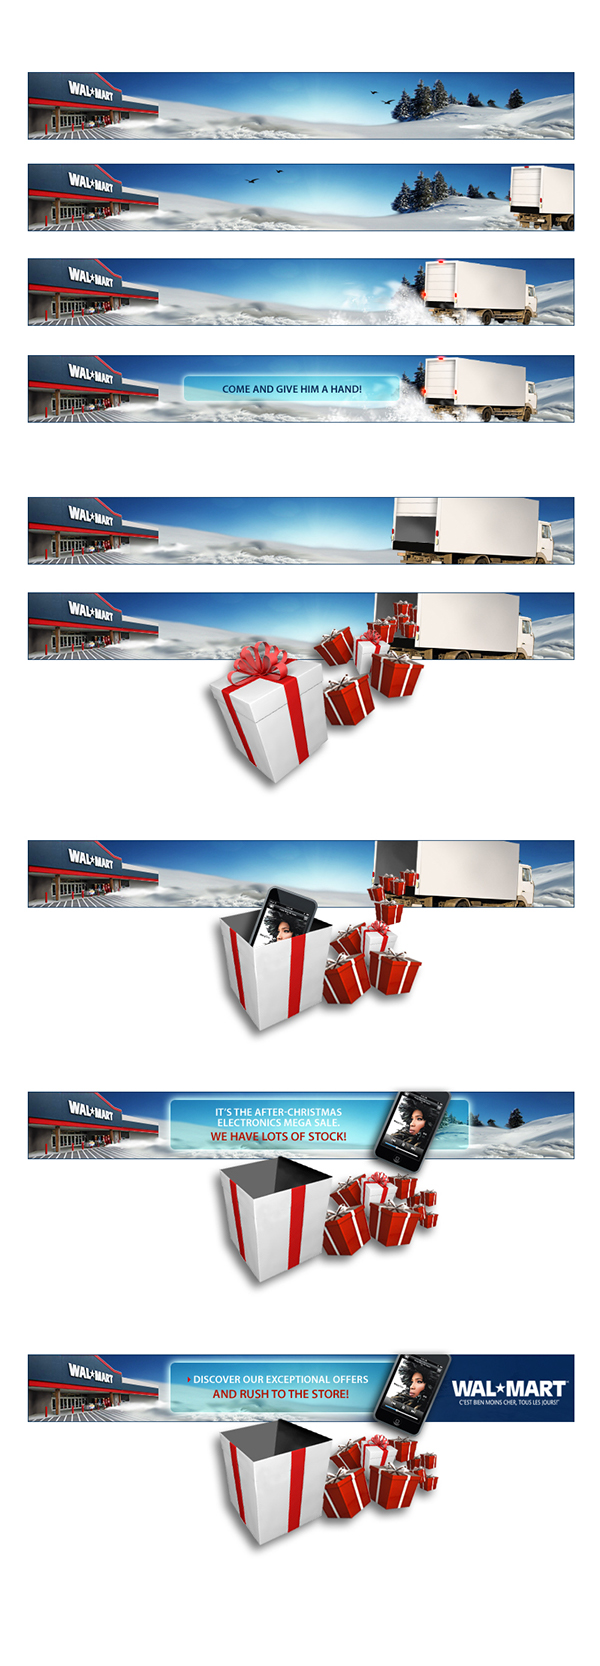 Walmart Canada Rich Media Banner on Behance